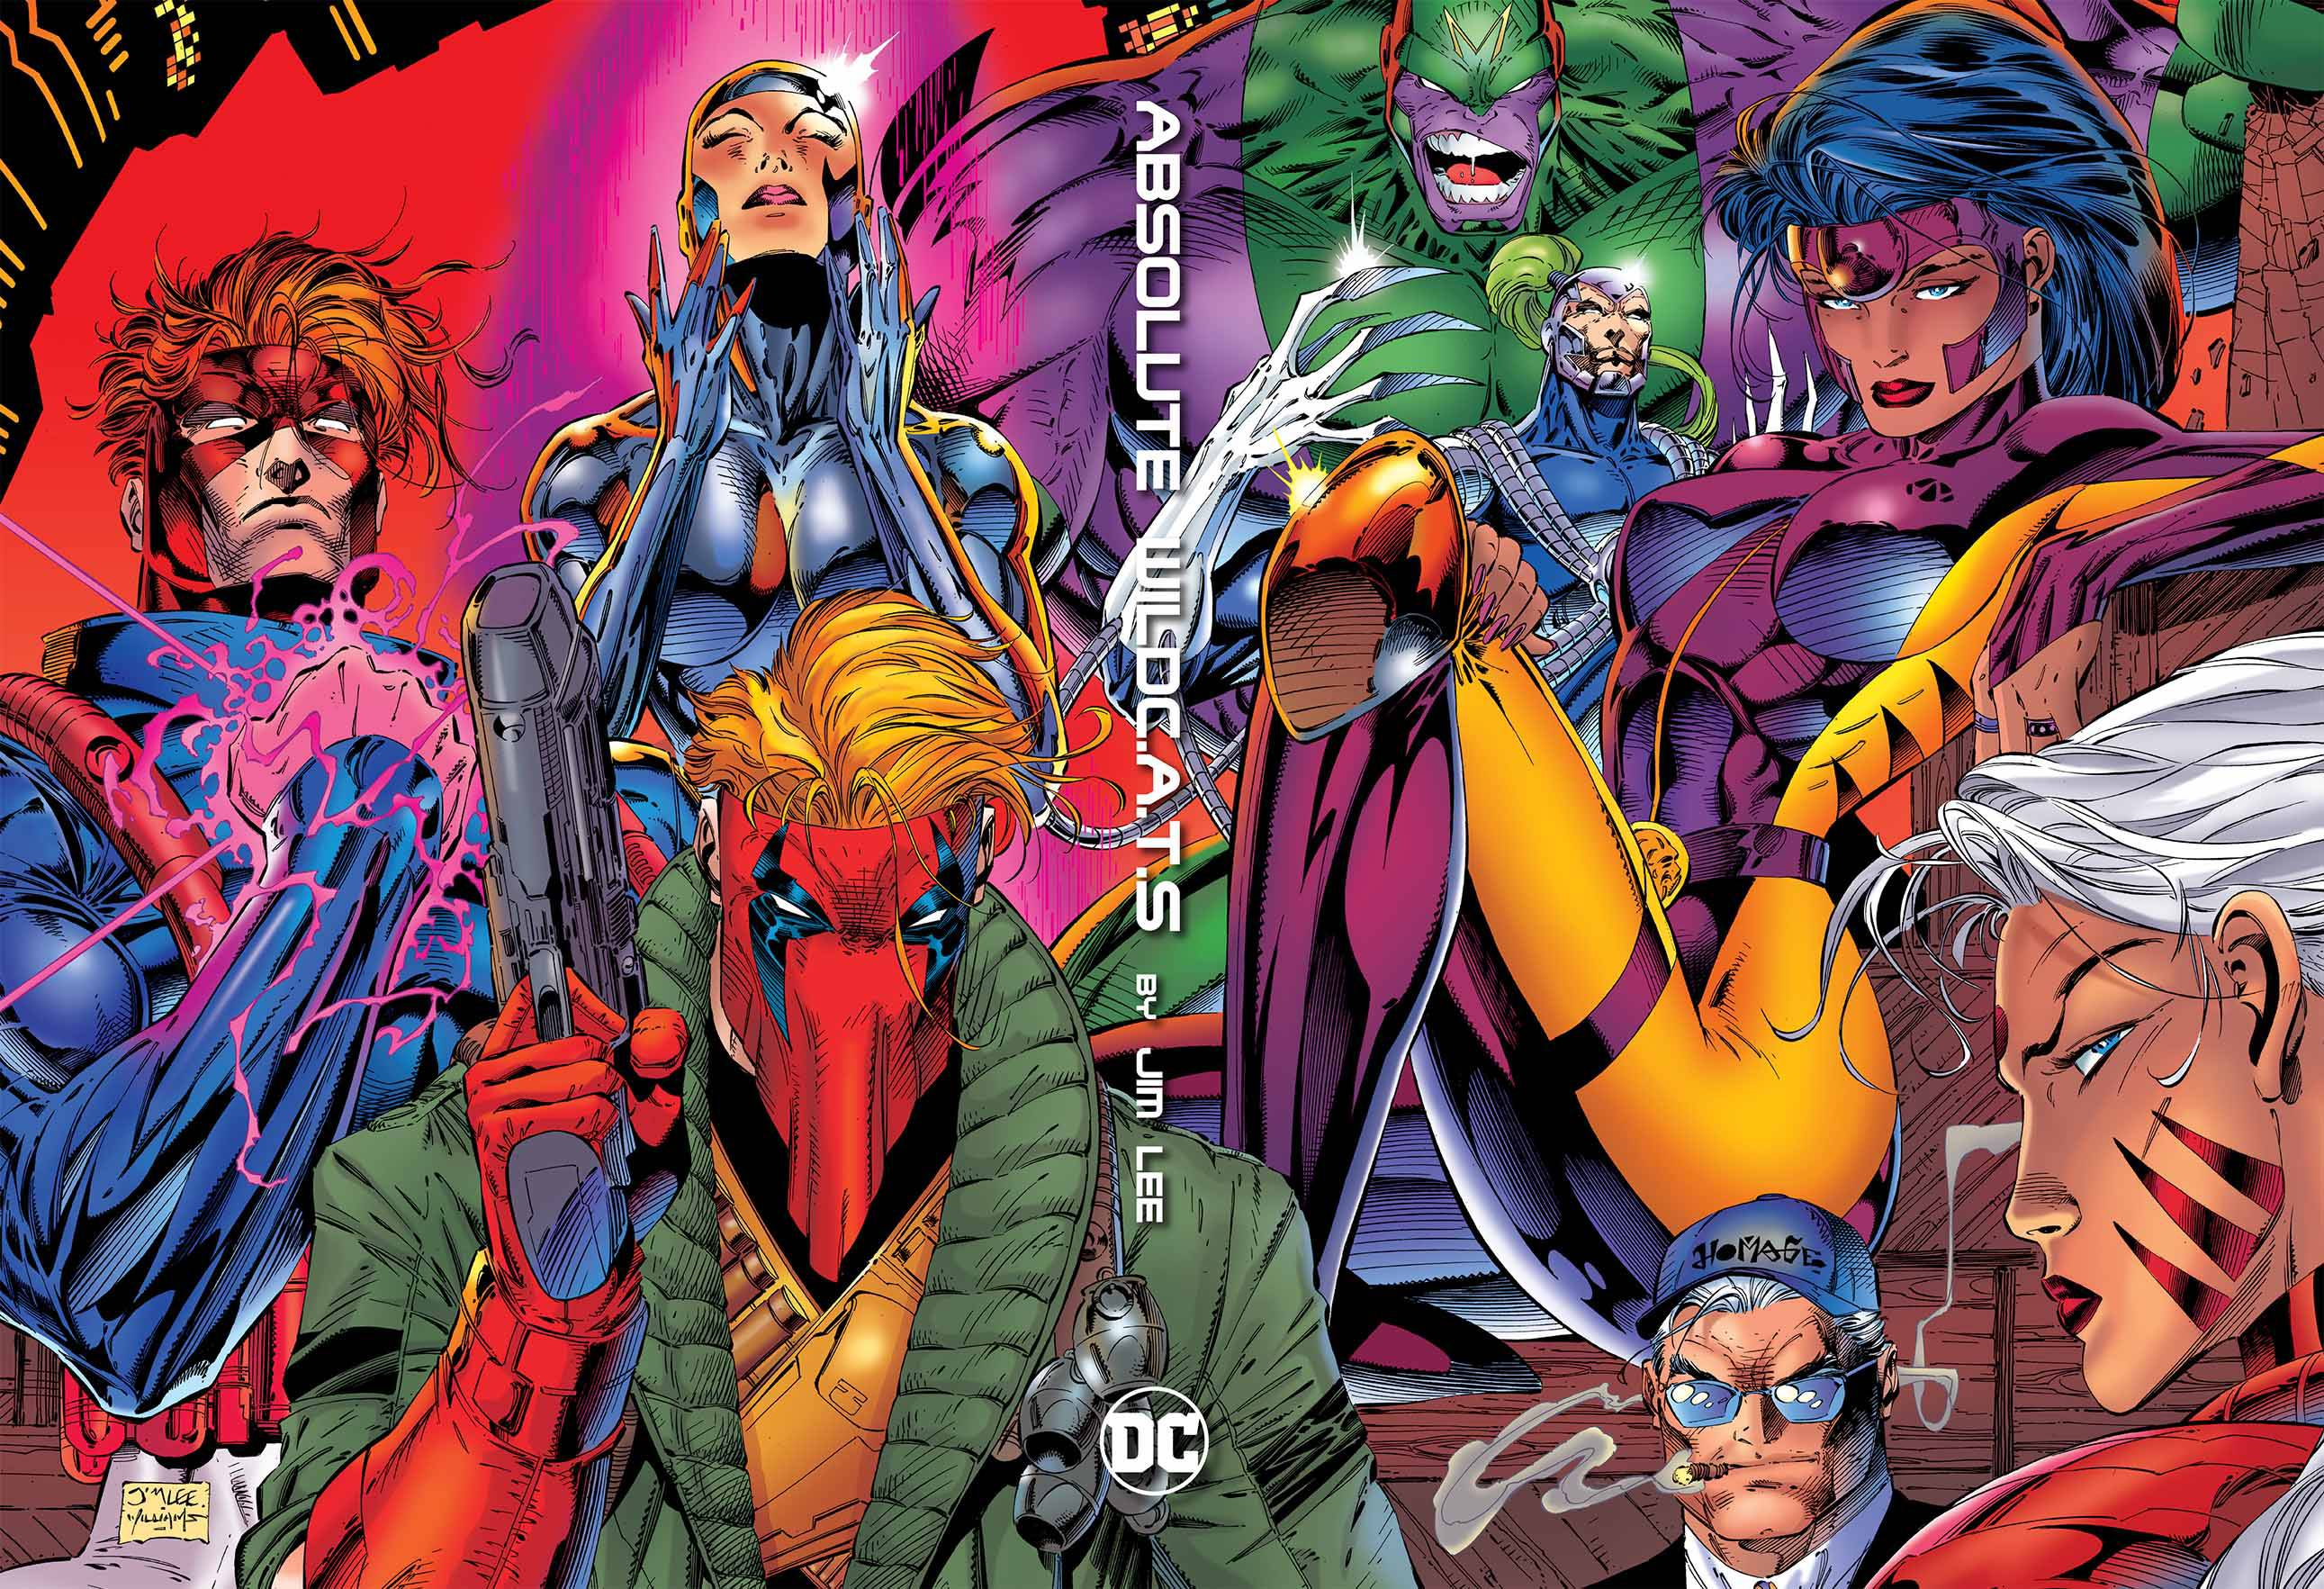 ABSOLUTE WILDCATS BY JIM LEE HC